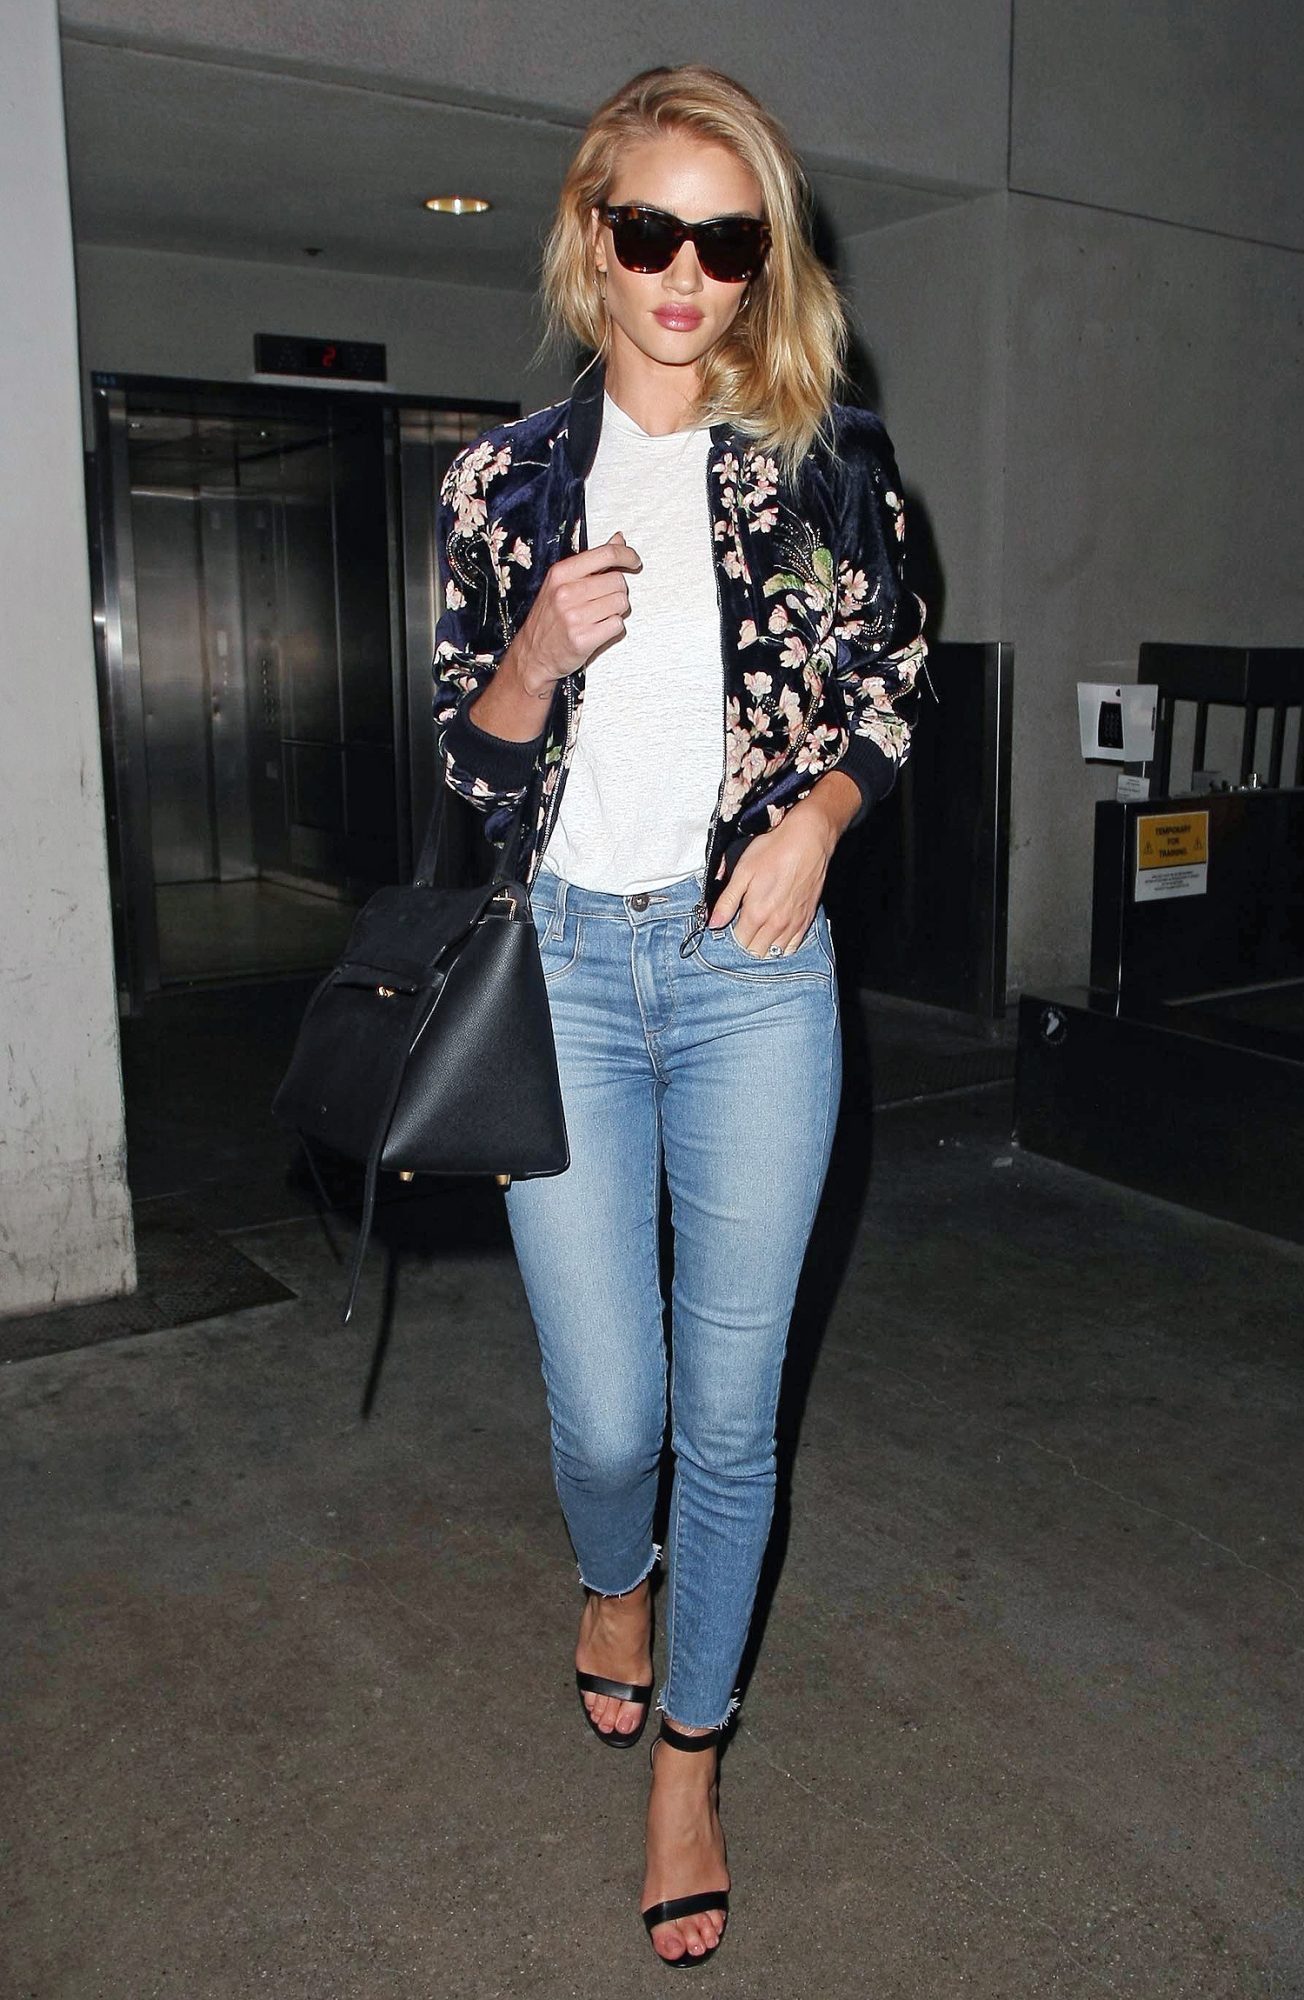 Rosie Huntington-Whitely at Los Angeles Airport †LAX